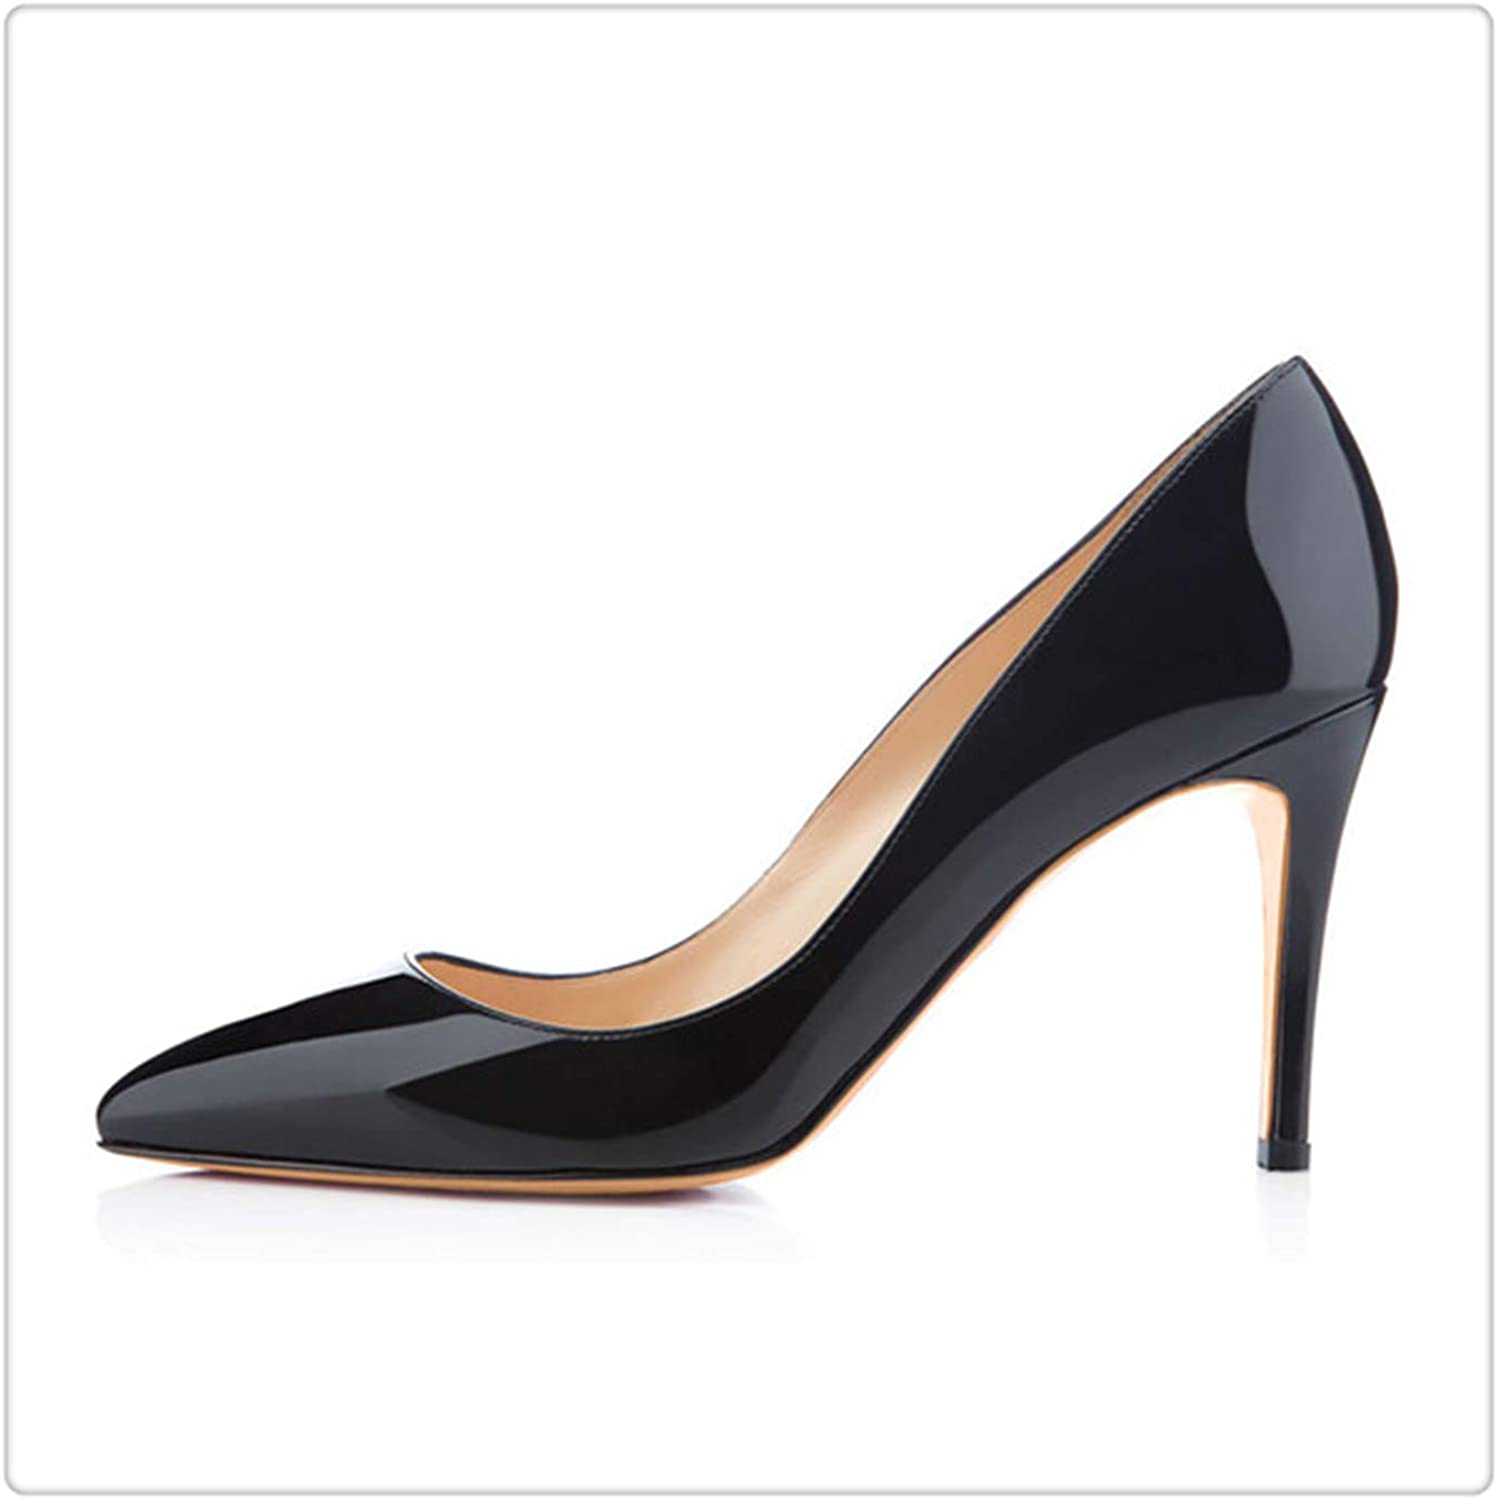 KKEPO& 3.5 Inches 8.5cm Thin High Heel Women's Pumps shoes Sexy Pointed Toe Wedding shoes Party Pumps Patent Leather shoes H170130 9